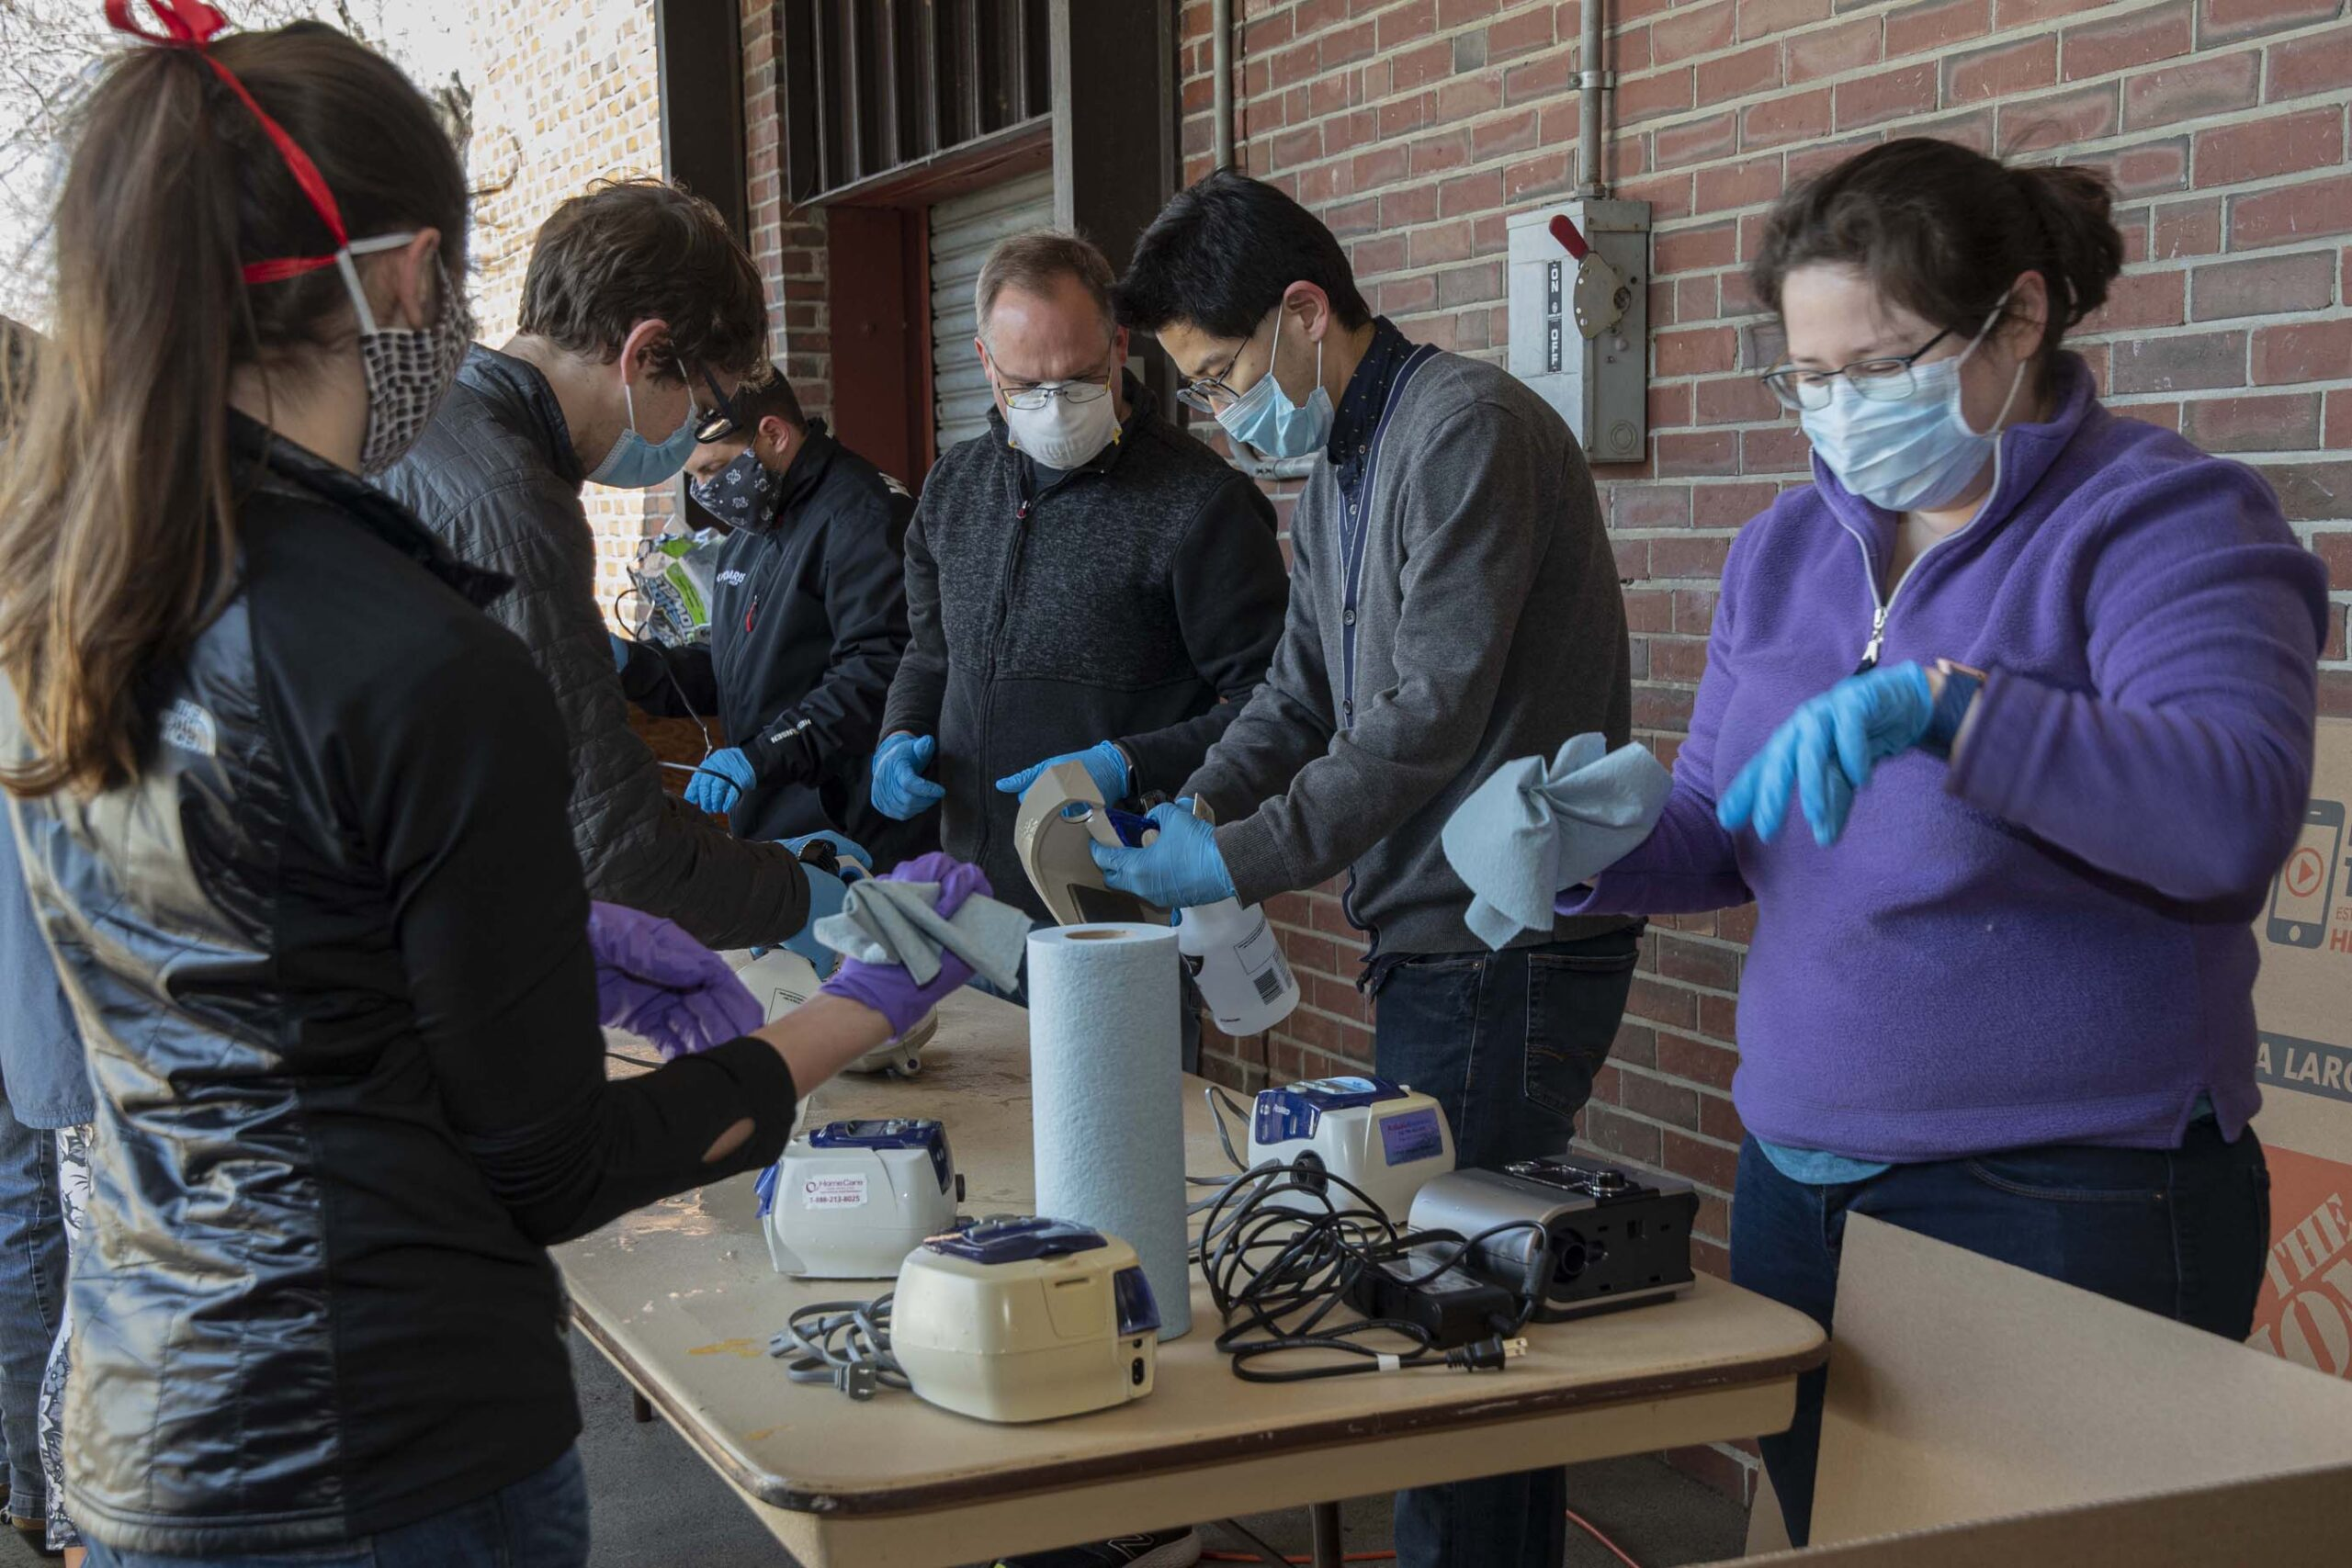 More than 60 volunteers unpack sleep apnea machines to be refurbished for use as ventilators at the University's Memorial Union in April. URI photo by Nora Lewis.